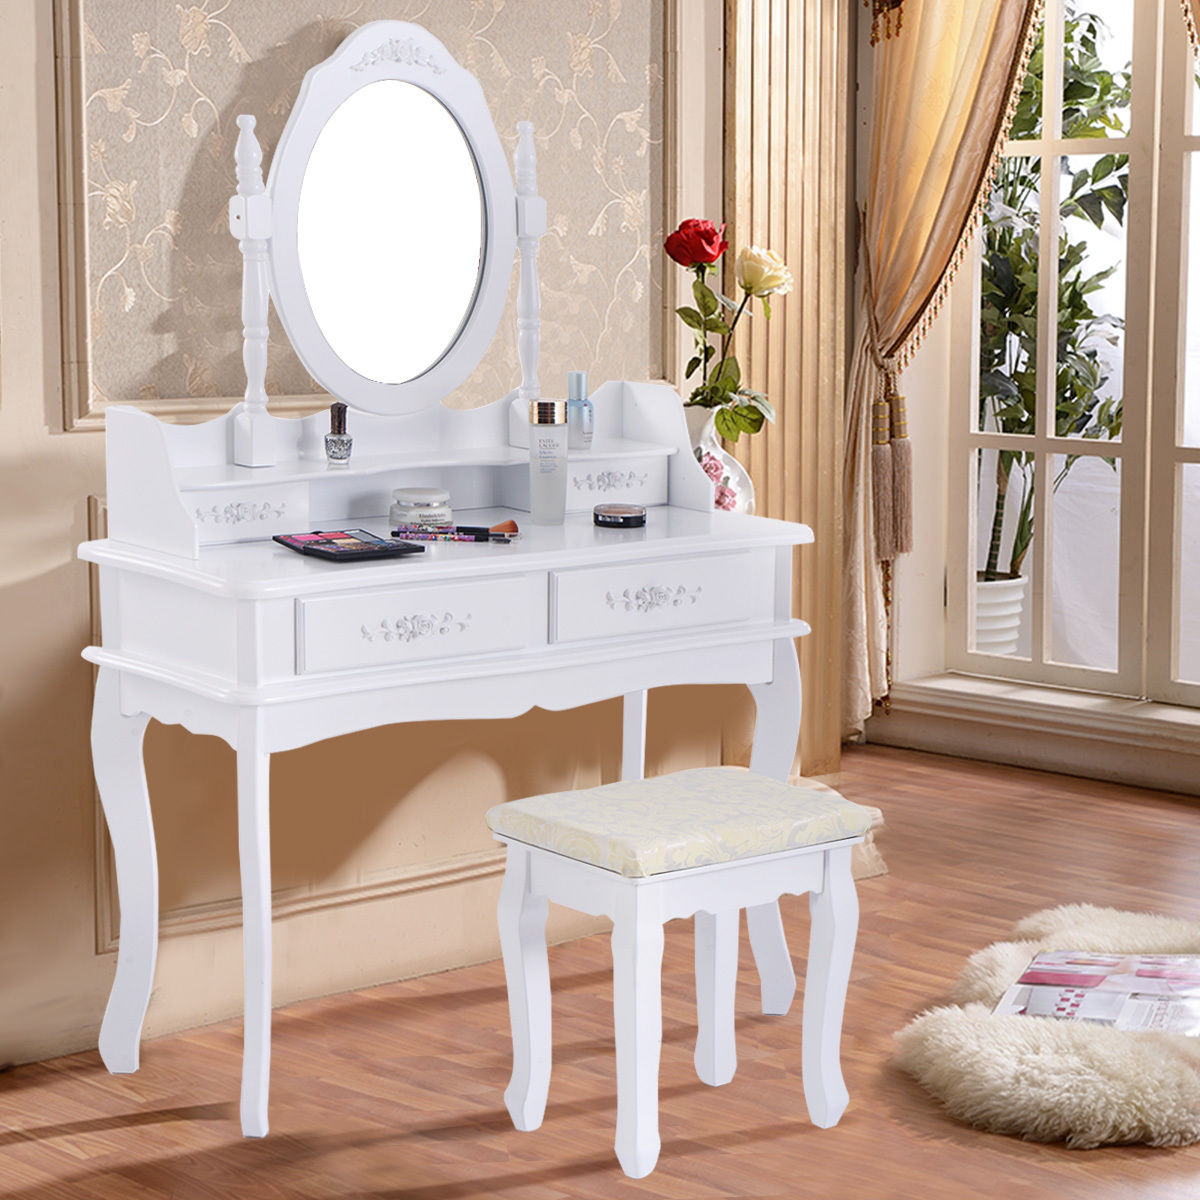 Costway White Vanity Jewelry Makeup Dressing Table Set Bathroom W/Stool 4  Drawer Mirror Wood Desk   Walmart.com